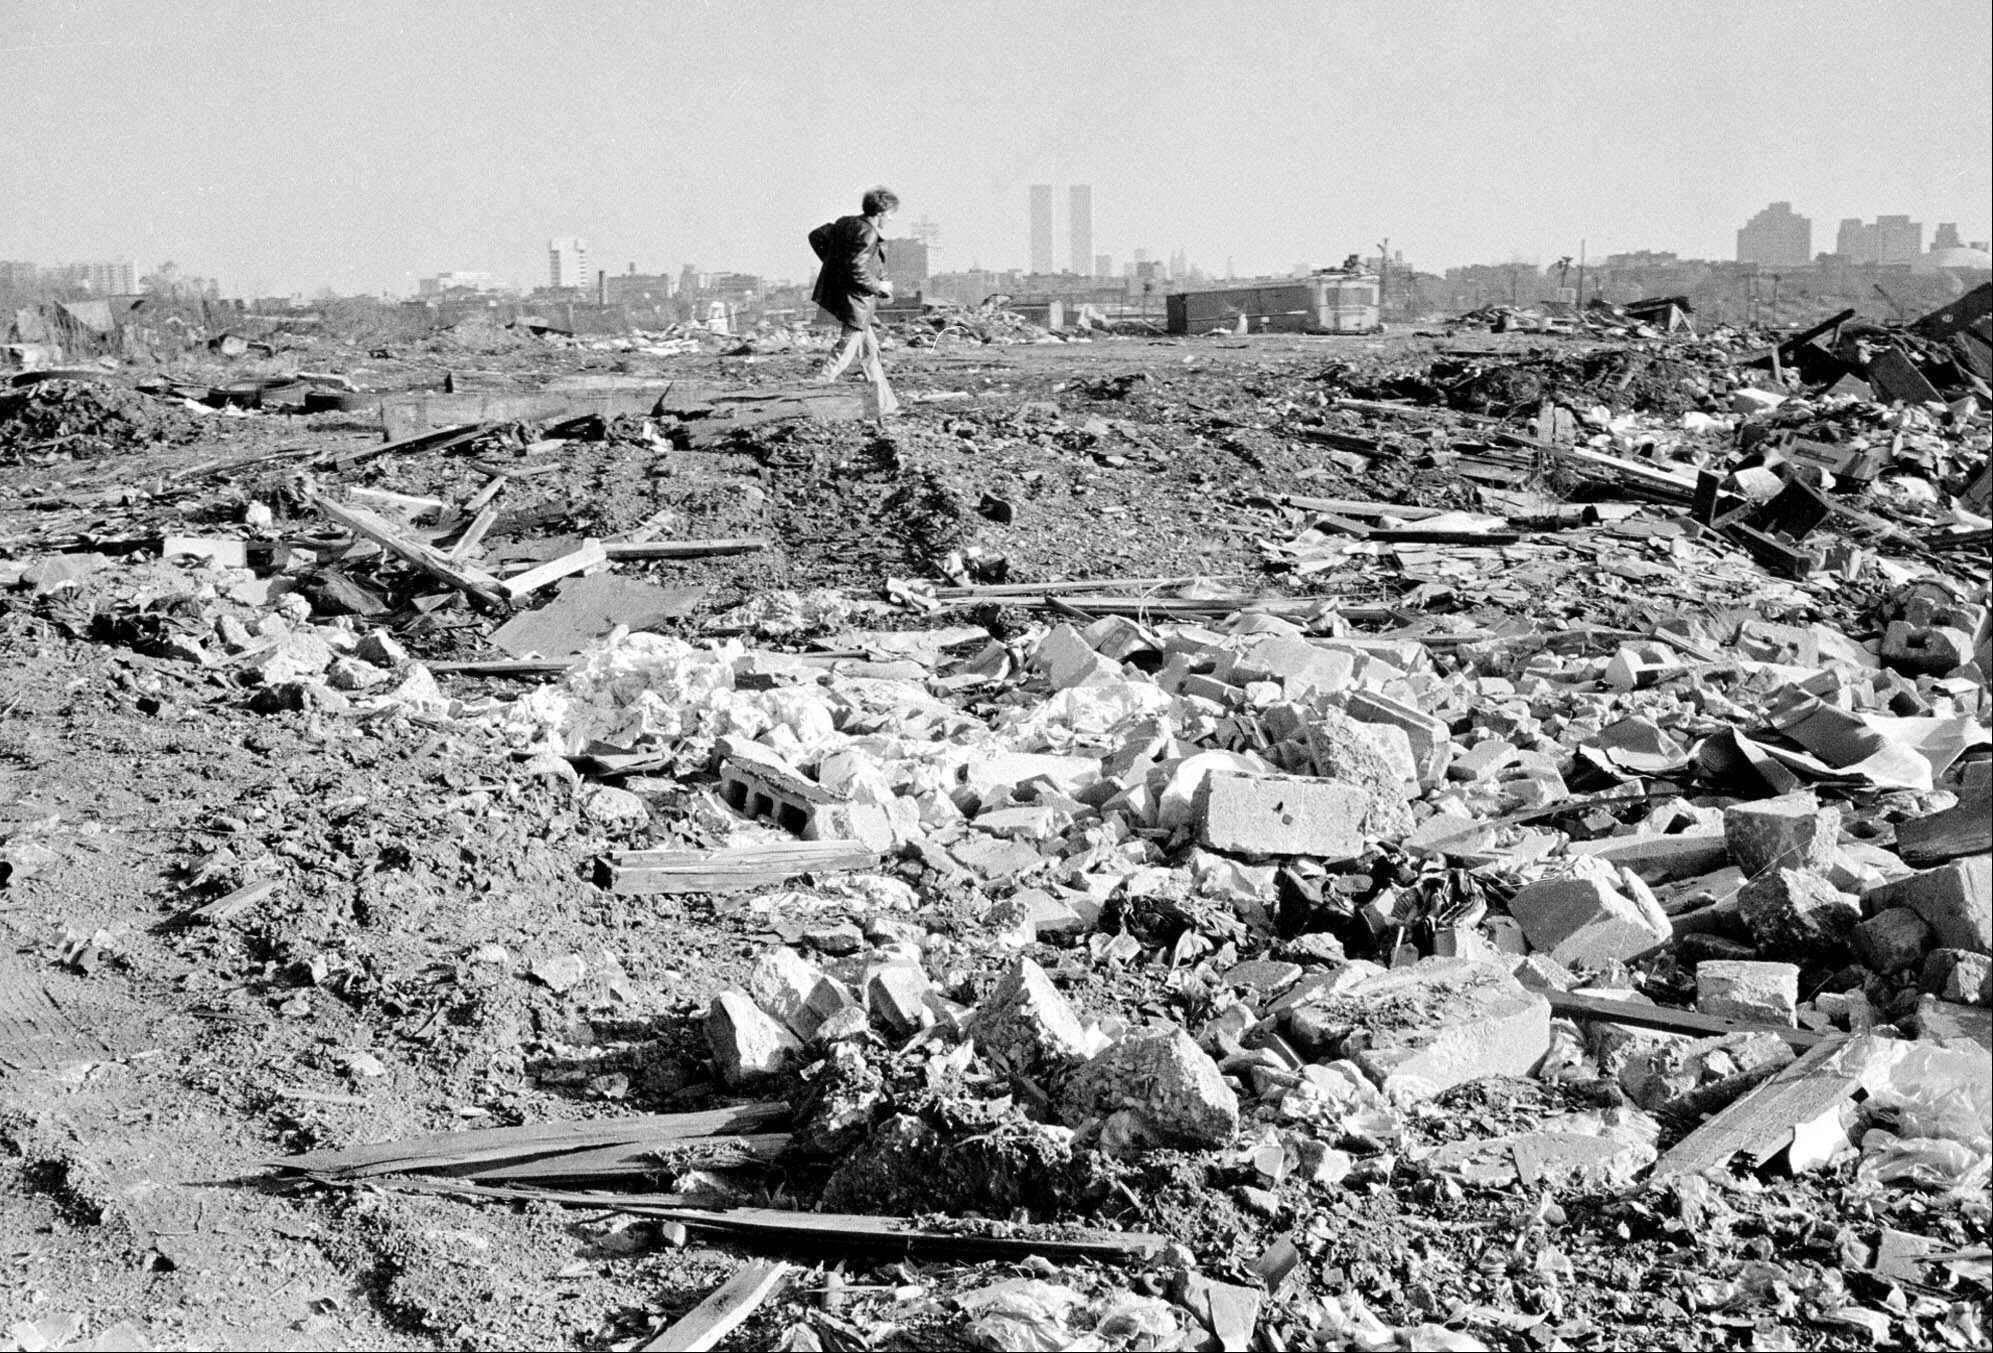 Dec. 5, 1975: A man walks over a rubble field in Jersey City, N.J., one of the locations where authorities searched for the body of missing former Teamster boss Jimmy Hoffa.